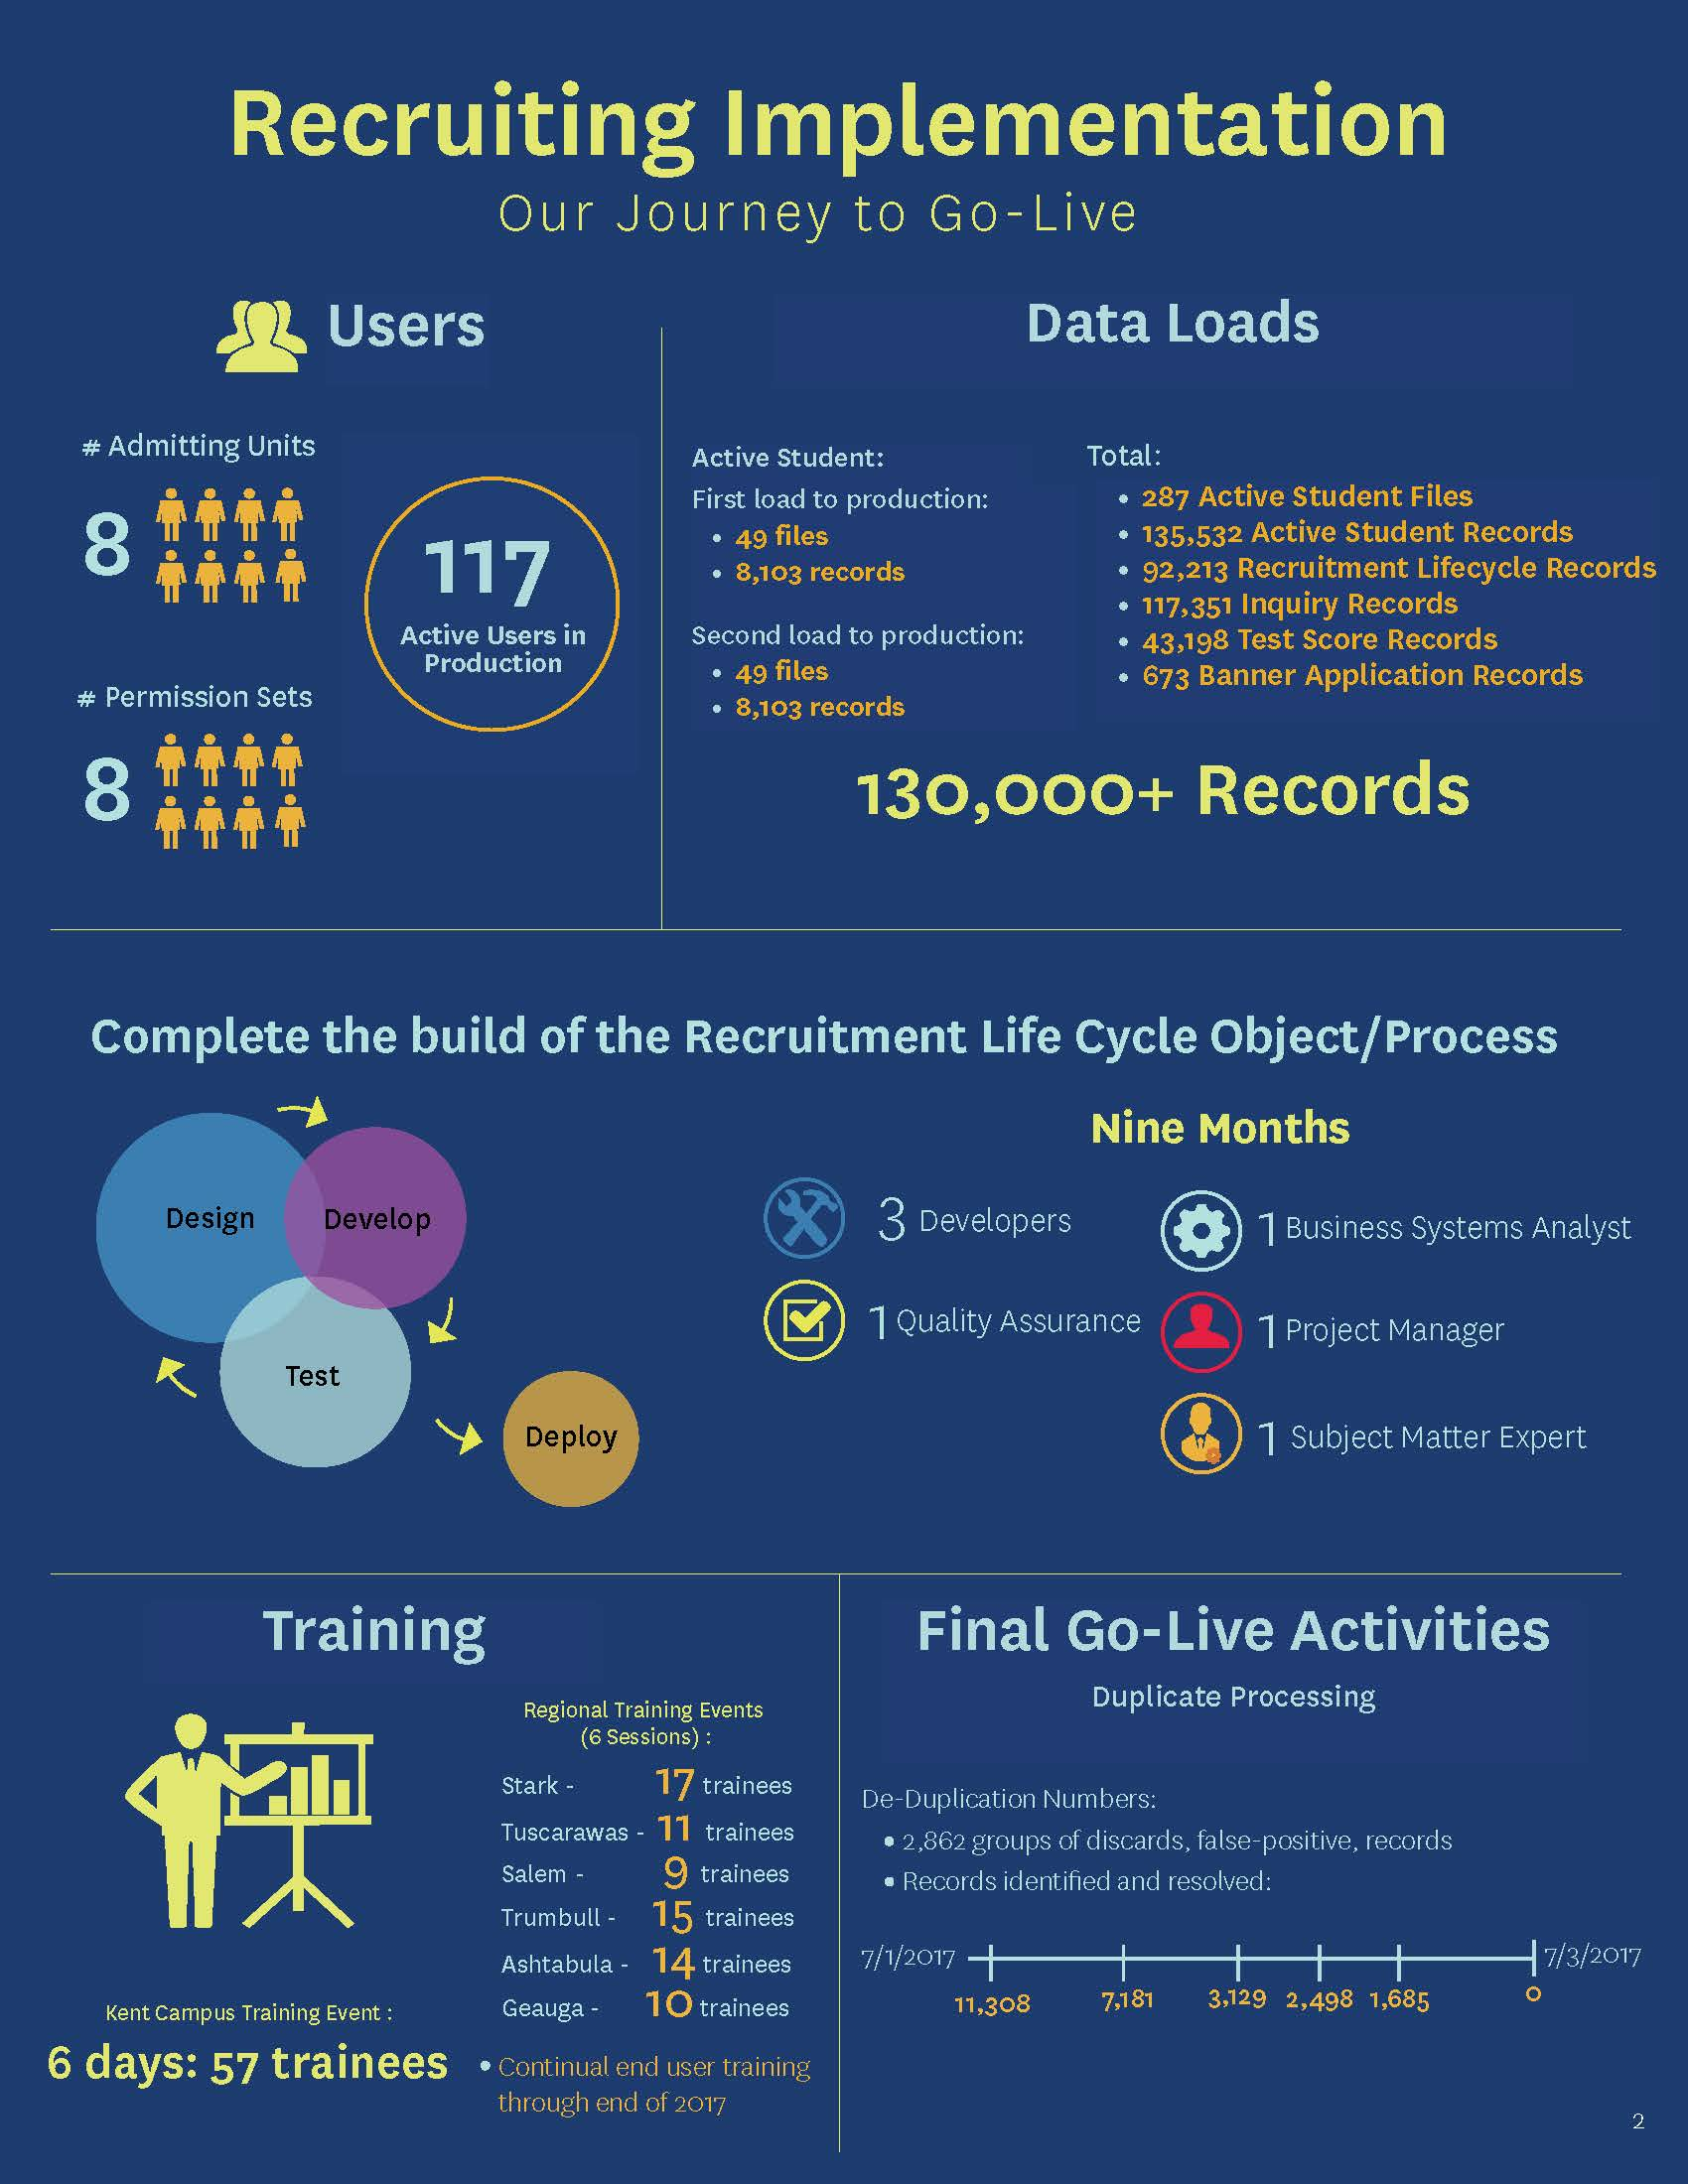 Recruiting Implementation Go-Live Statistics Infographic